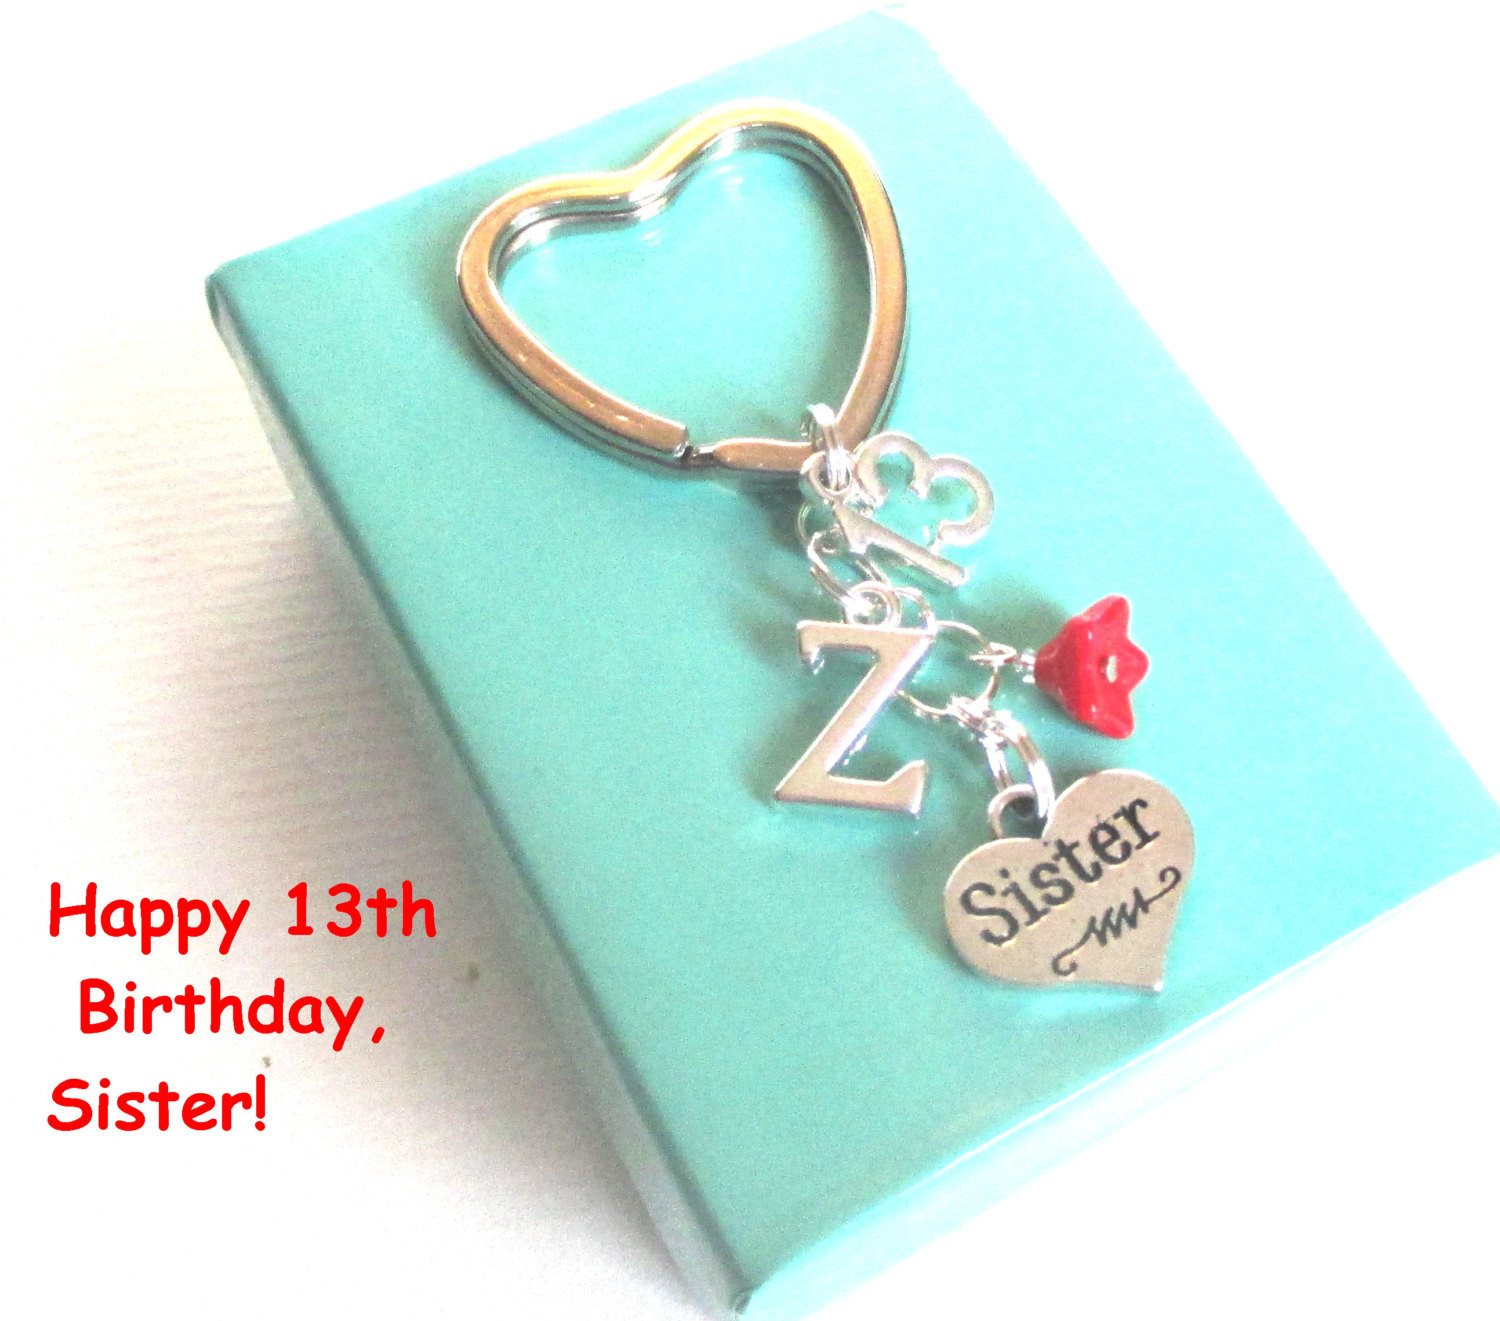 Best ideas about 13th Birthday Gifts . Save or Pin Sister 13th birthday t 13th keychain by DoodlepopDesigns Now.